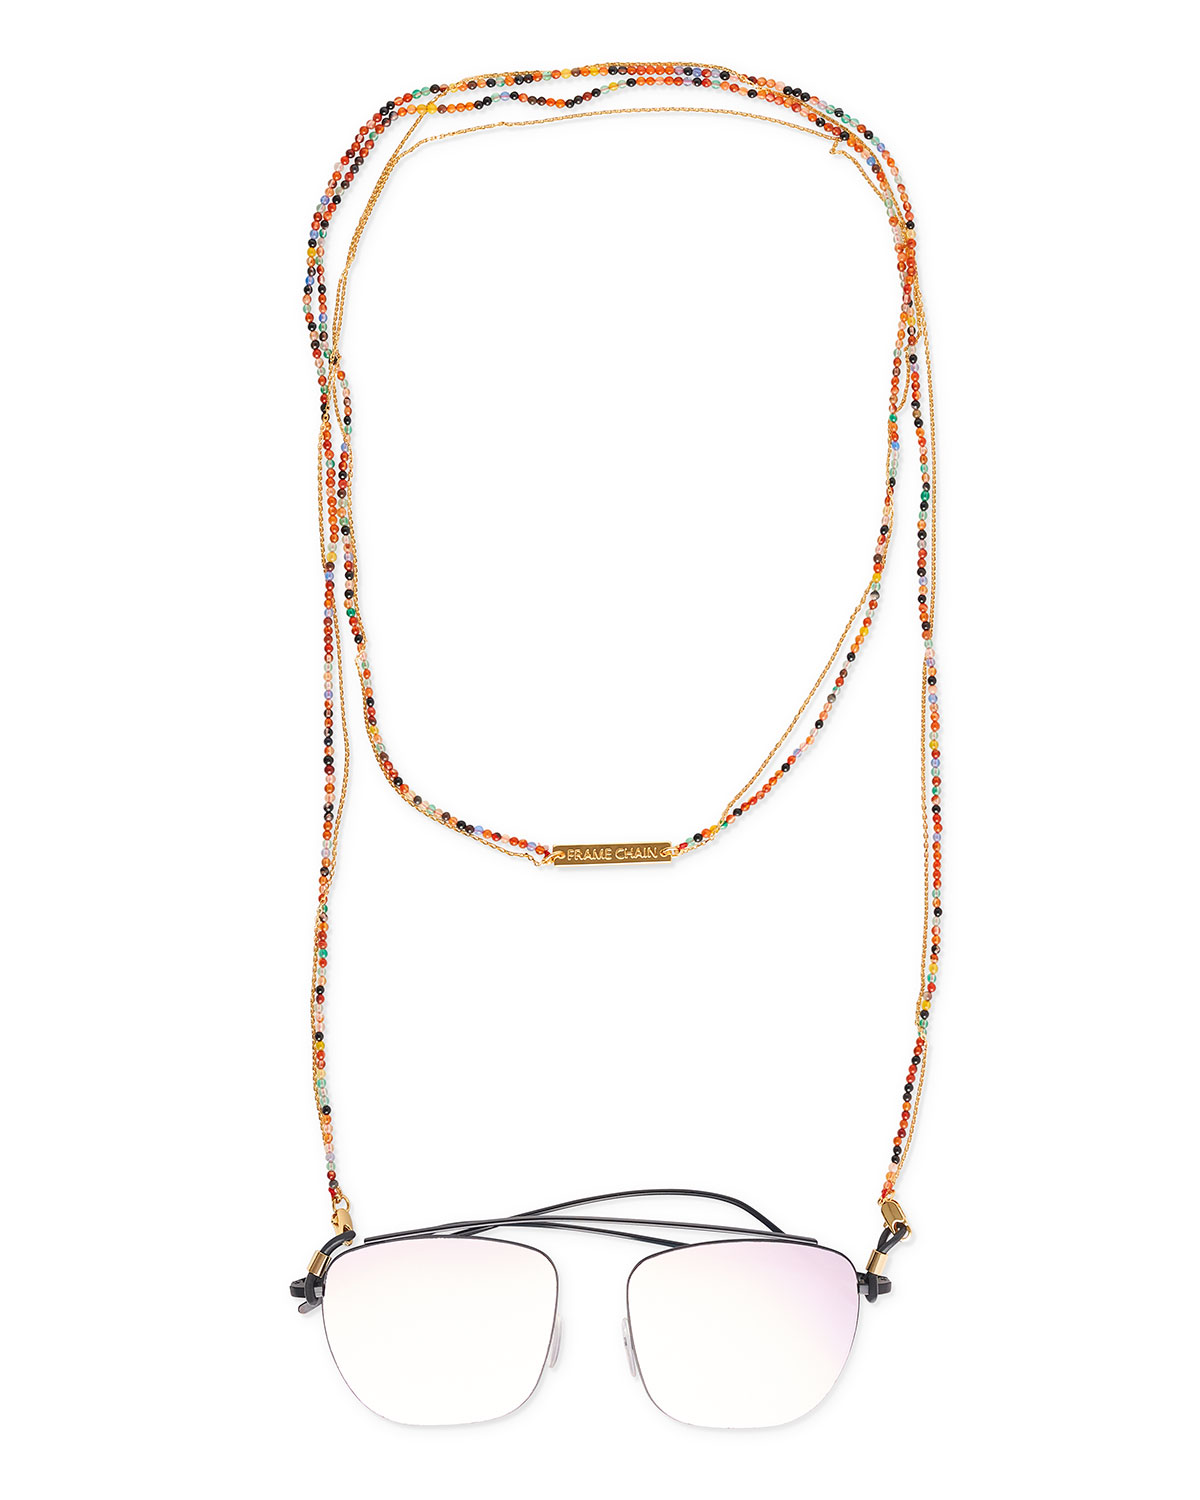 It's a Wrap Beaded Chain